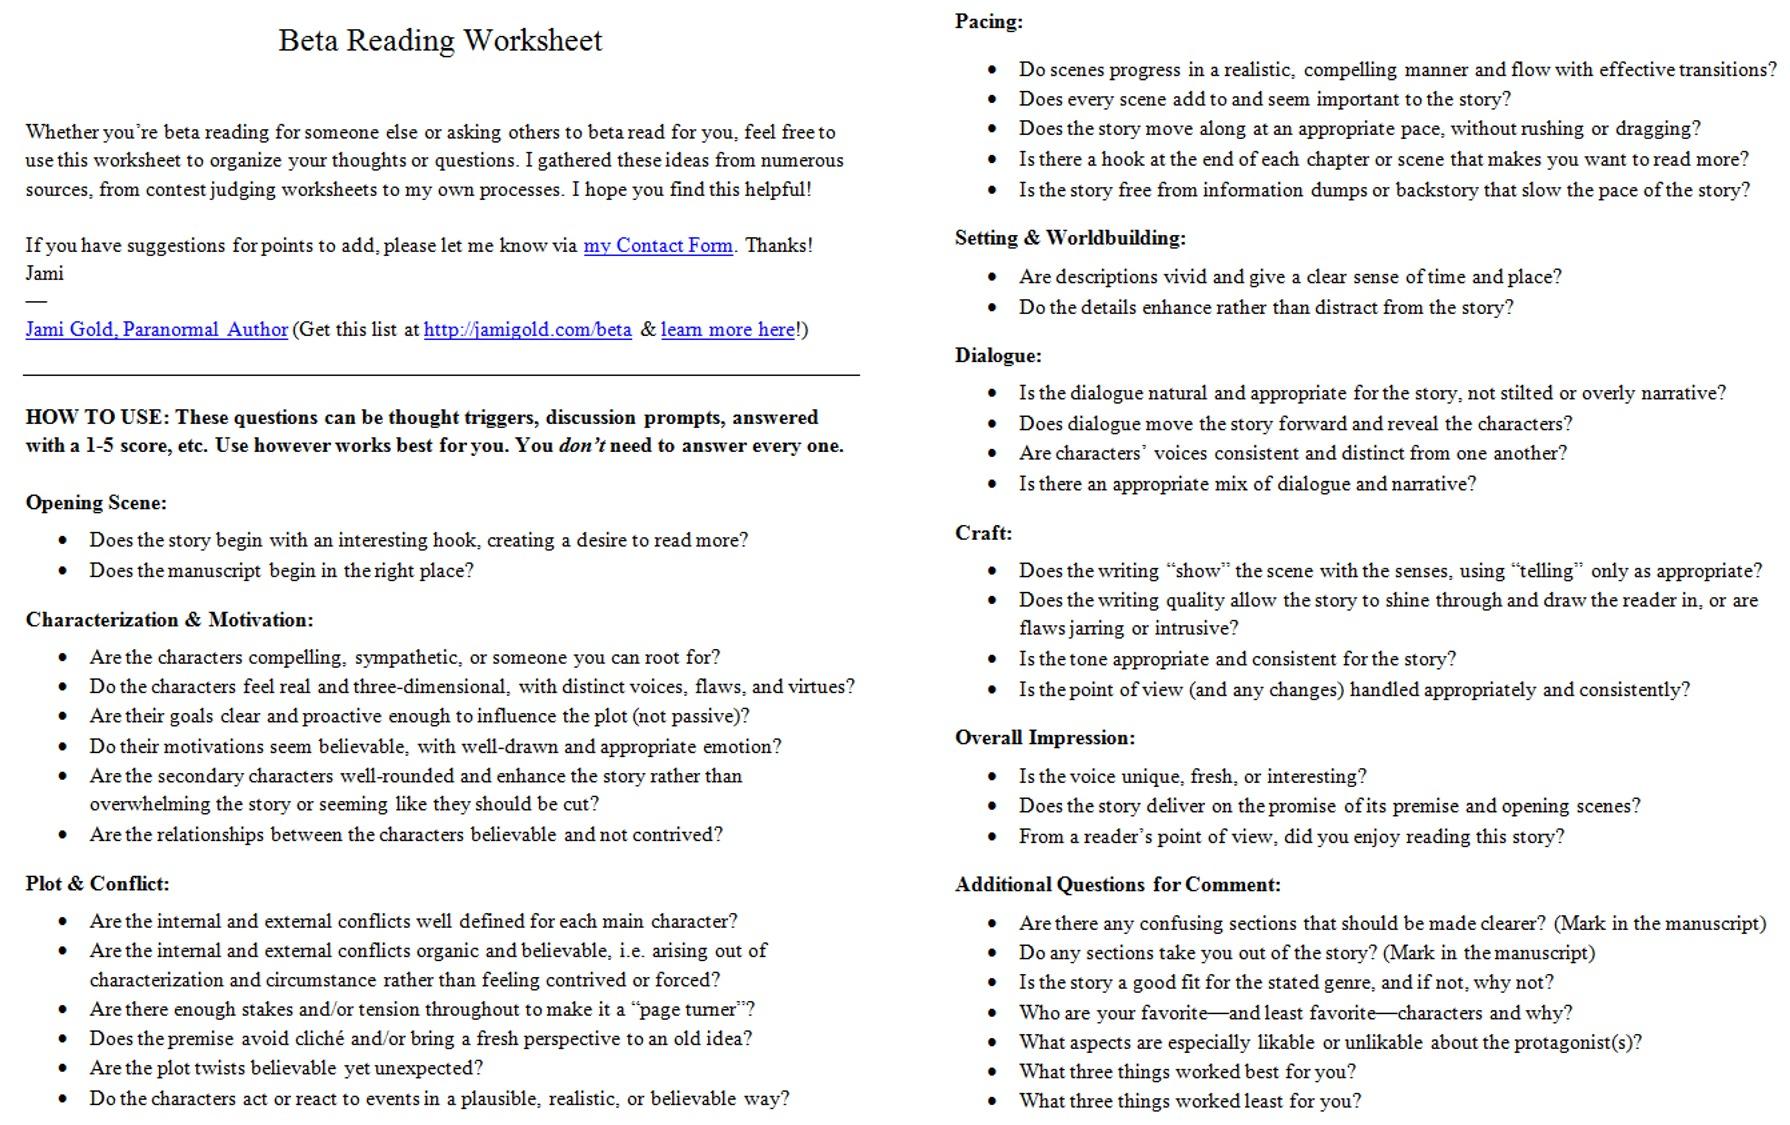 Proatmealus  Scenic Worksheets For Writers  Jami Gold Paranormal Author With Heavenly Screen Shot Of The Twopage Beta Reading Worksheet With Awesome Noun And Verb Worksheets Also Seeking Safety Worksheets In Addition Living And Nonliving Worksheets And Frog Life Cycle Worksheet As Well As Find The Measure Of Each Angle Indicated Worksheet Additionally Lewis Dot Structures Worksheet From Jamigoldcom With Proatmealus  Heavenly Worksheets For Writers  Jami Gold Paranormal Author With Awesome Screen Shot Of The Twopage Beta Reading Worksheet And Scenic Noun And Verb Worksheets Also Seeking Safety Worksheets In Addition Living And Nonliving Worksheets From Jamigoldcom